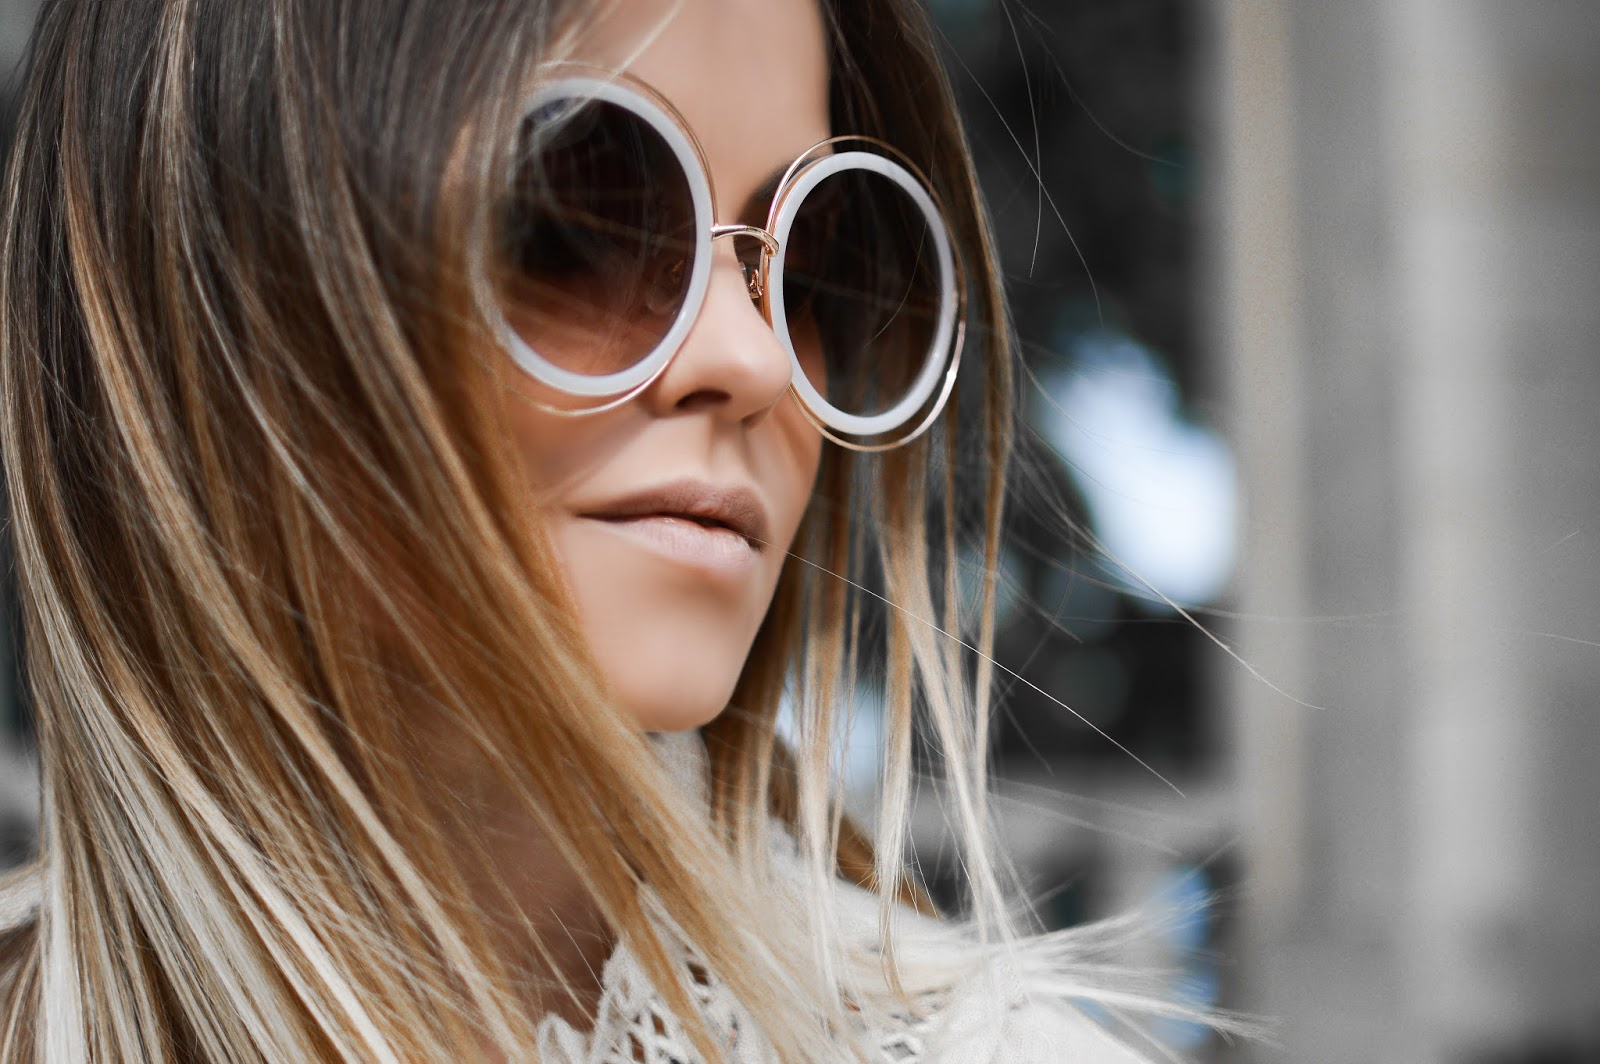 woman with long hair wearing sunglasses